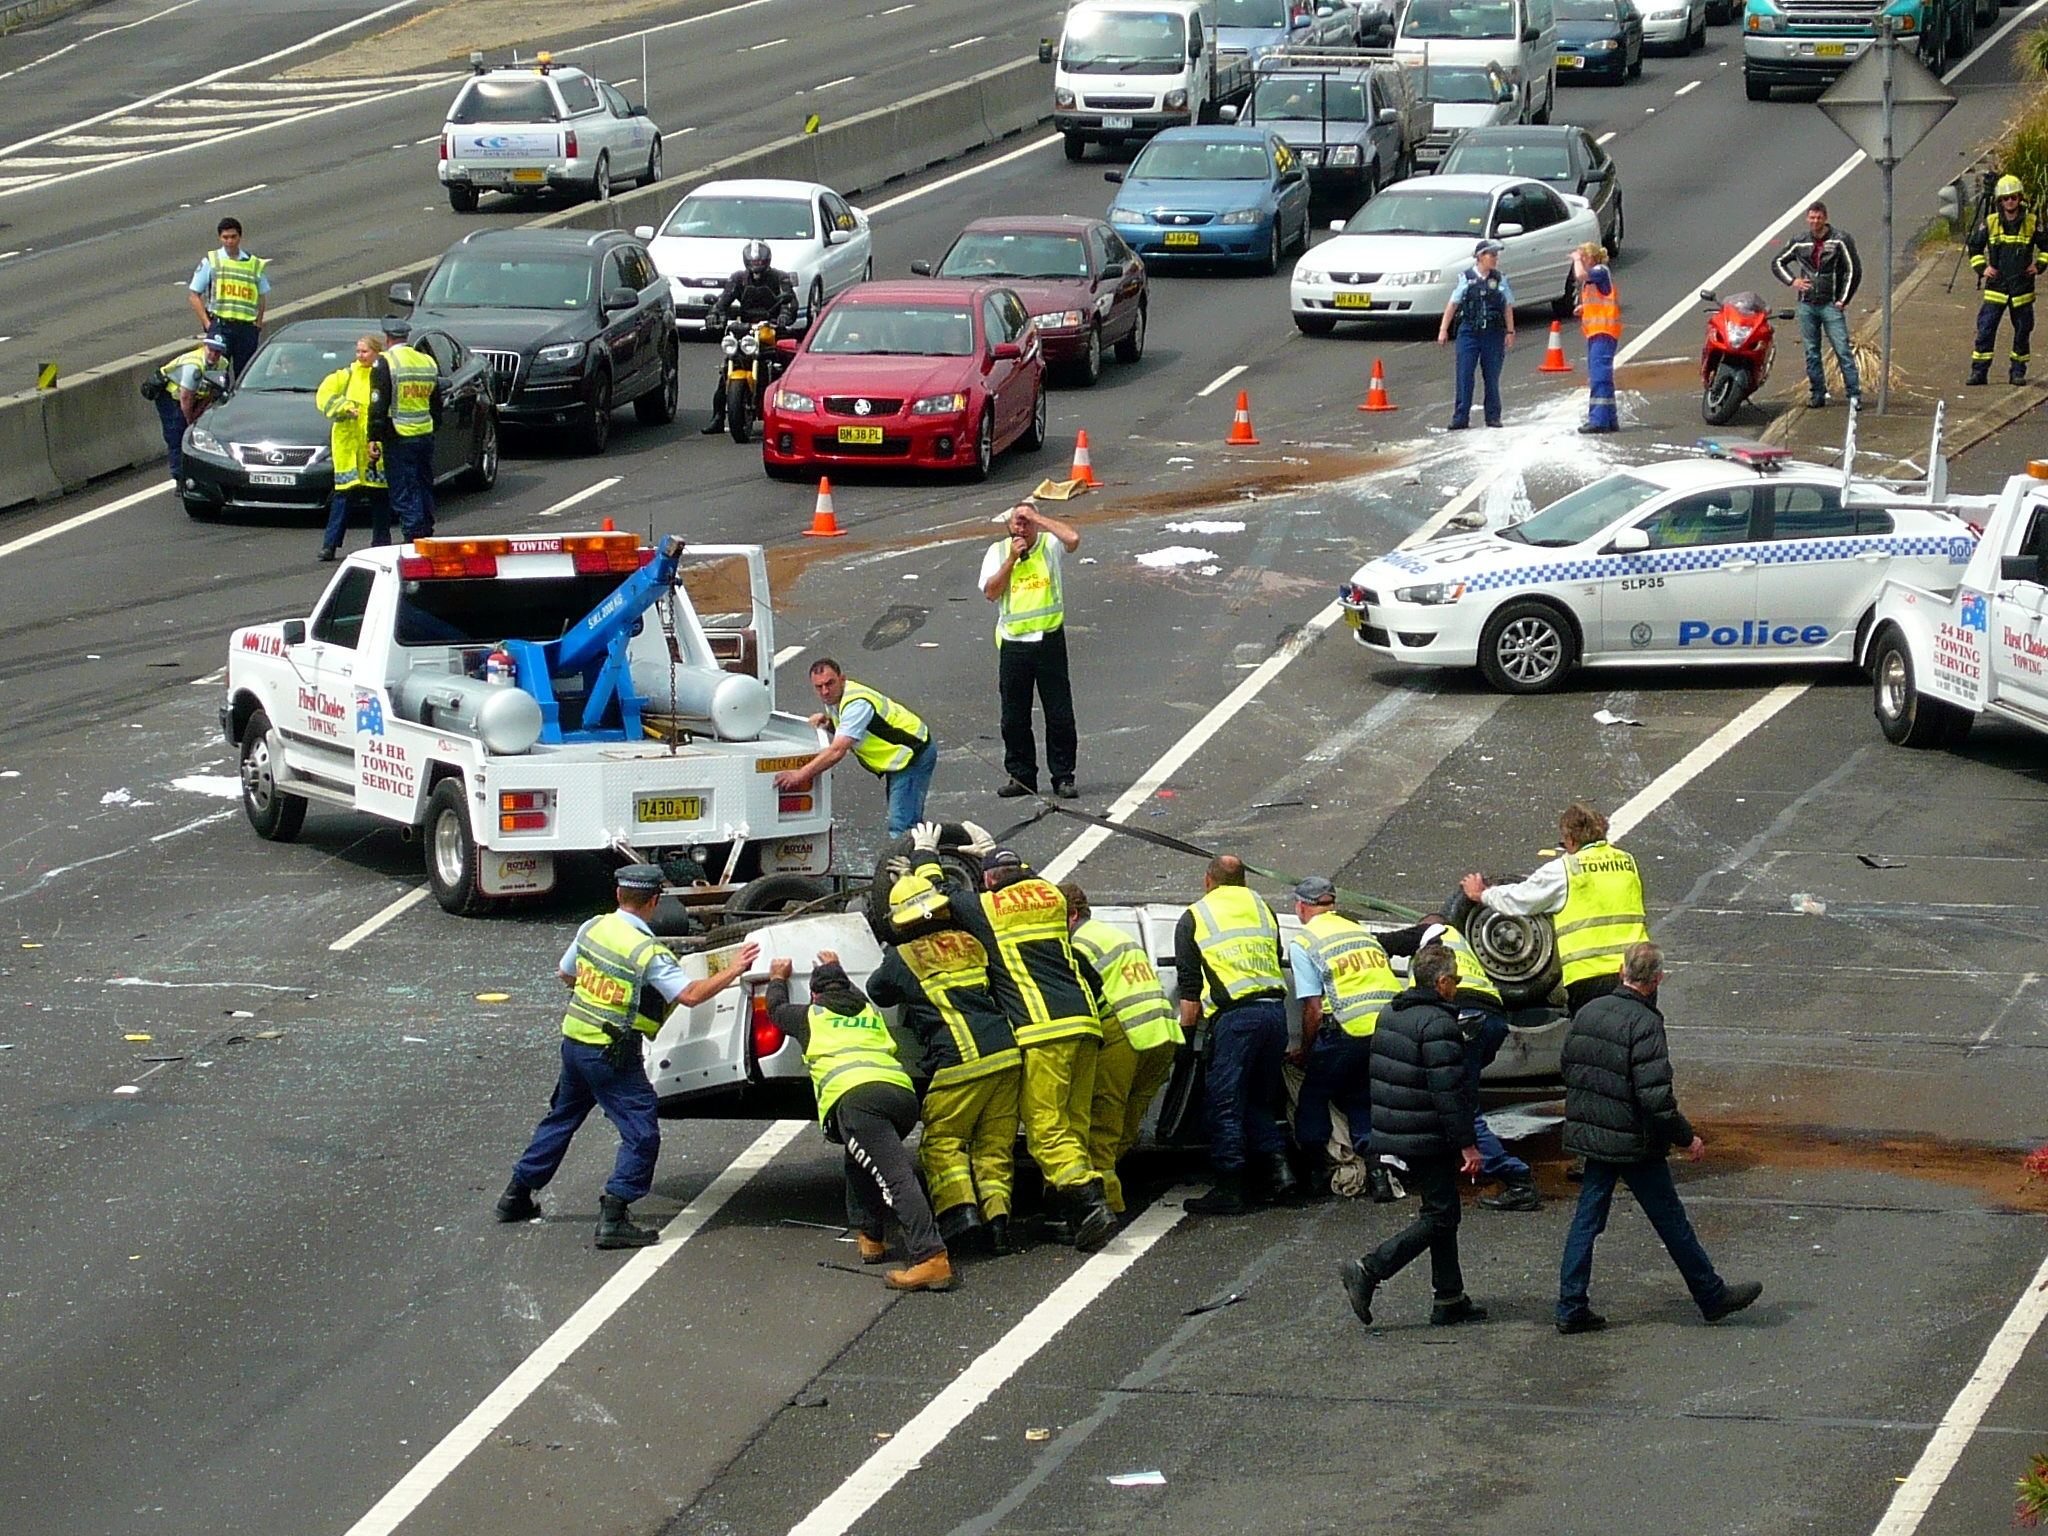 File:Multi vehicle accident - M4 Motorway, Sydney, NSW (8076163011